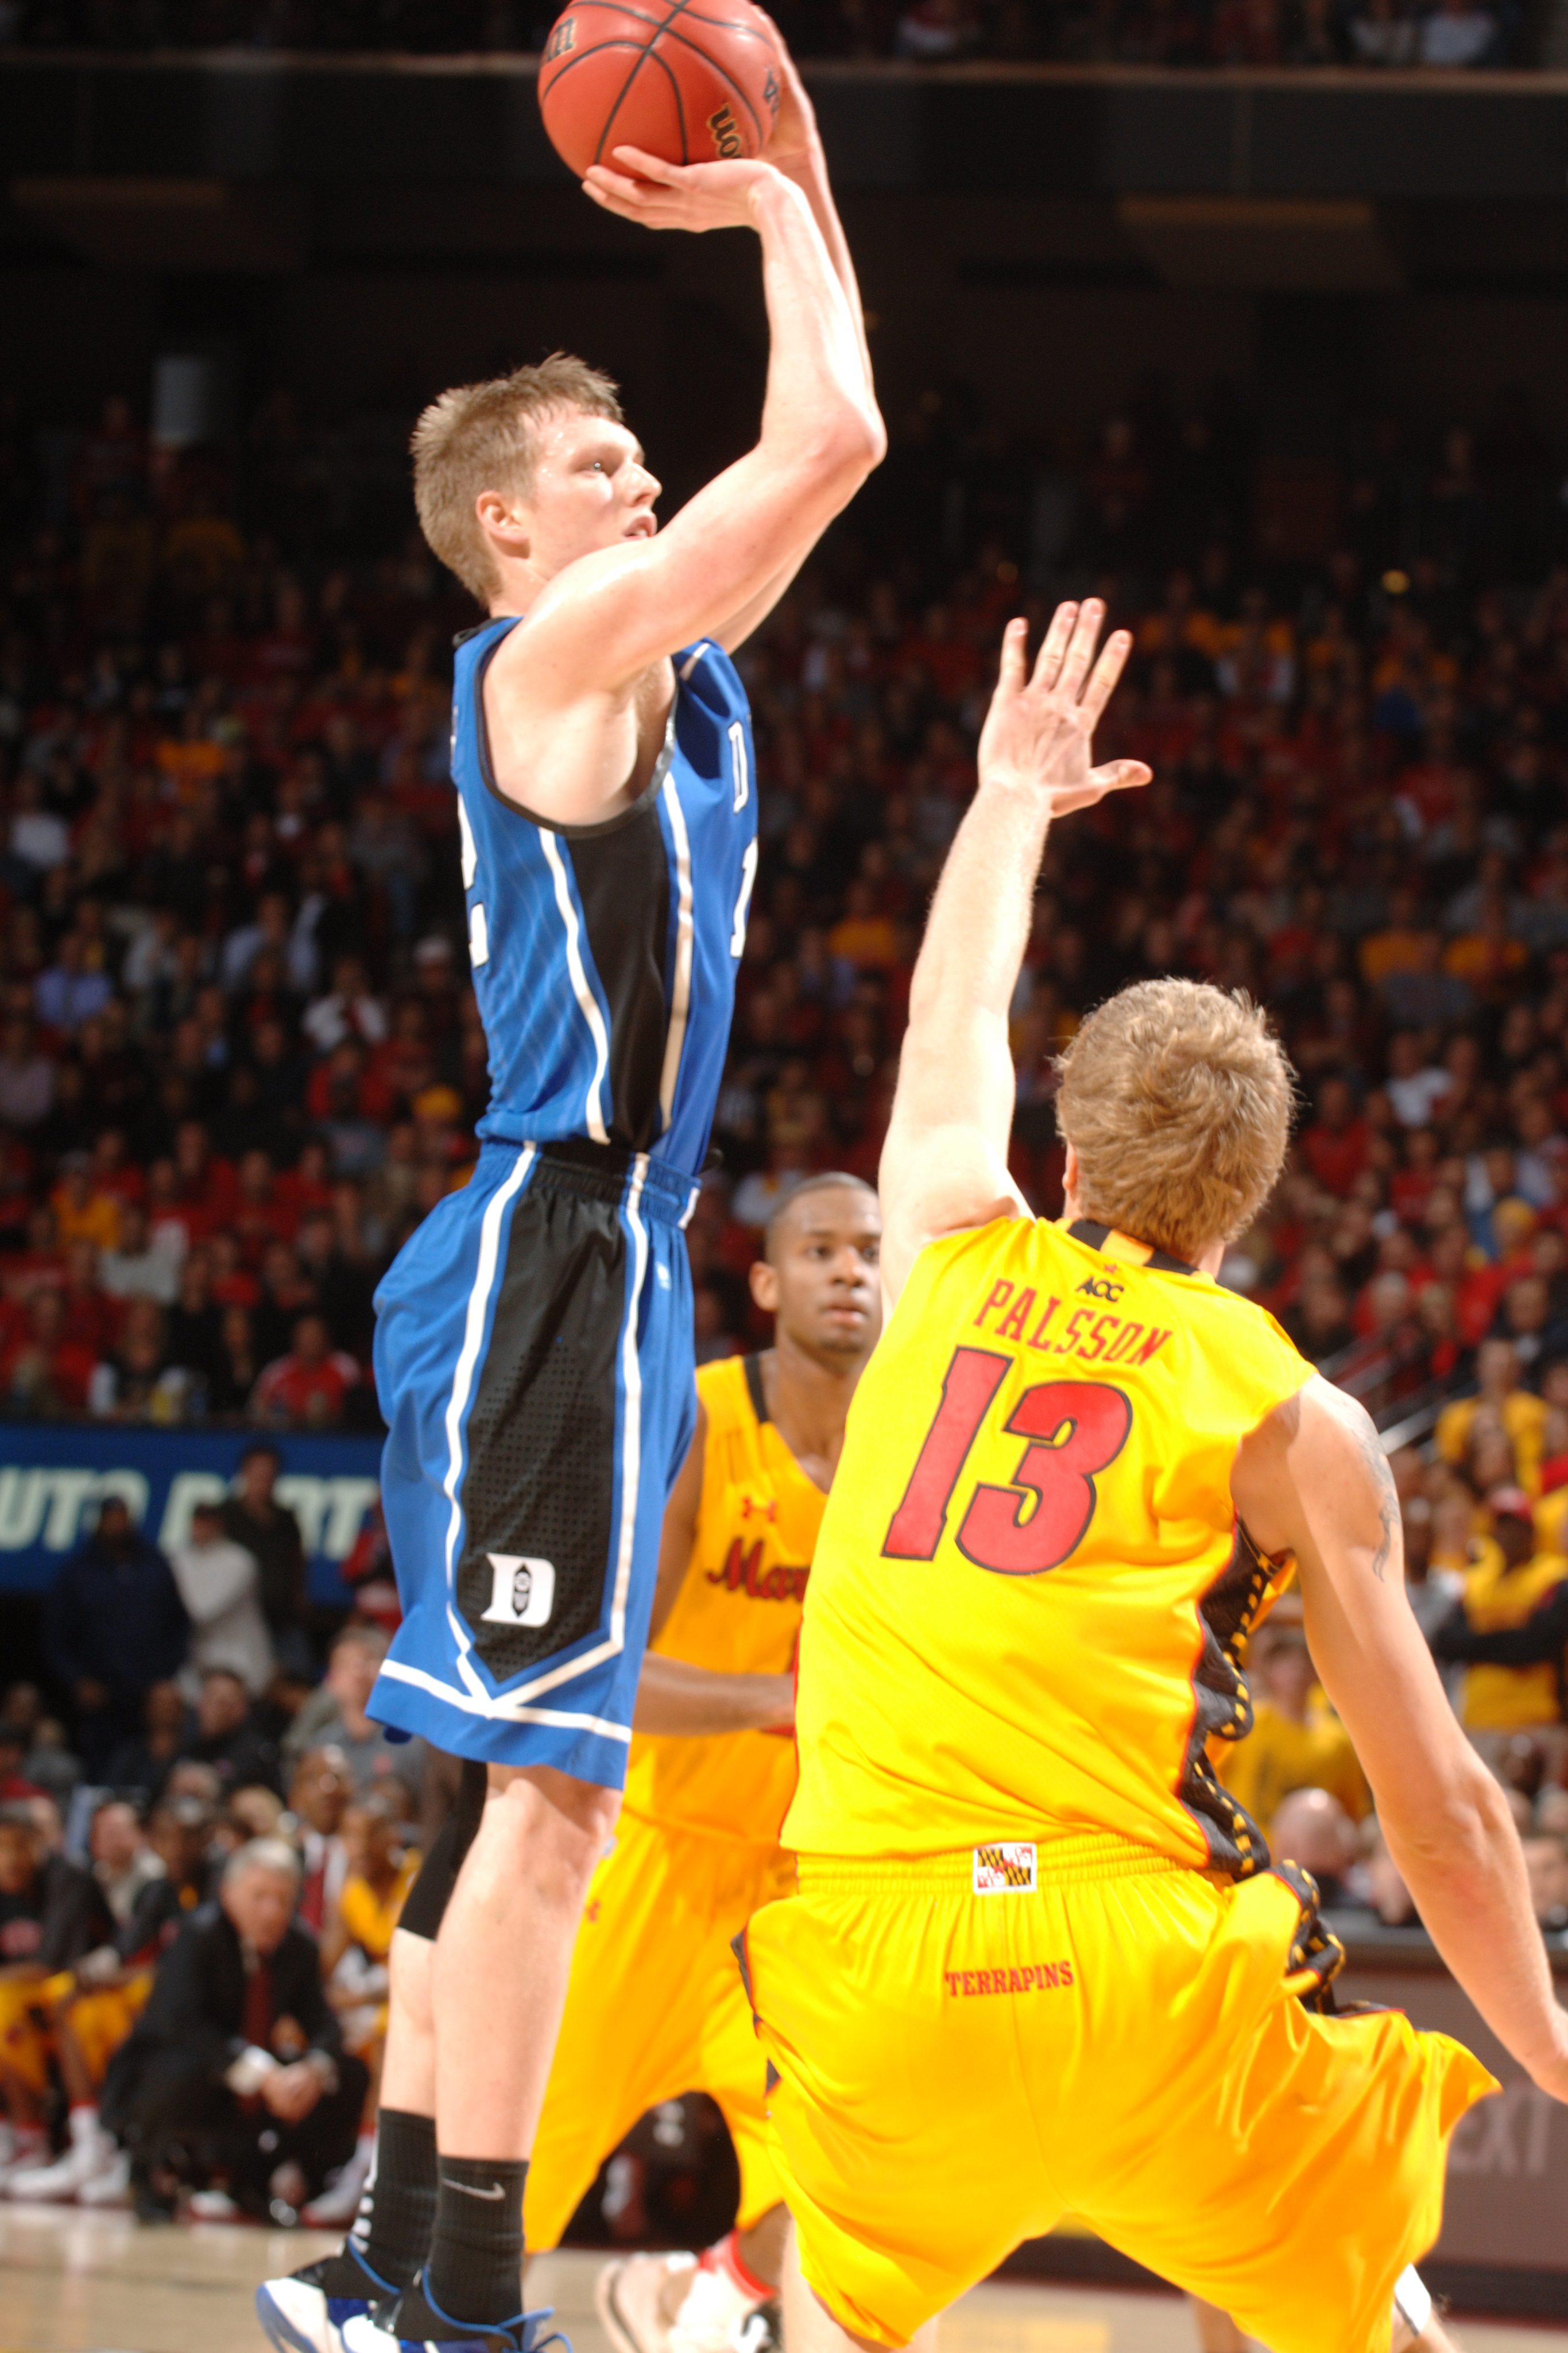 COLLEGE PARK, MD - FEBRUARY 2: Kyle Singler #12 of the Duke Blue Devils takes a jump shot over Haukur Paulsson #13 of the Maryland terrapins during a college basketball game on February 2, 2011 at the Comcast Arena in College Park, Maryland. The Blue Devi